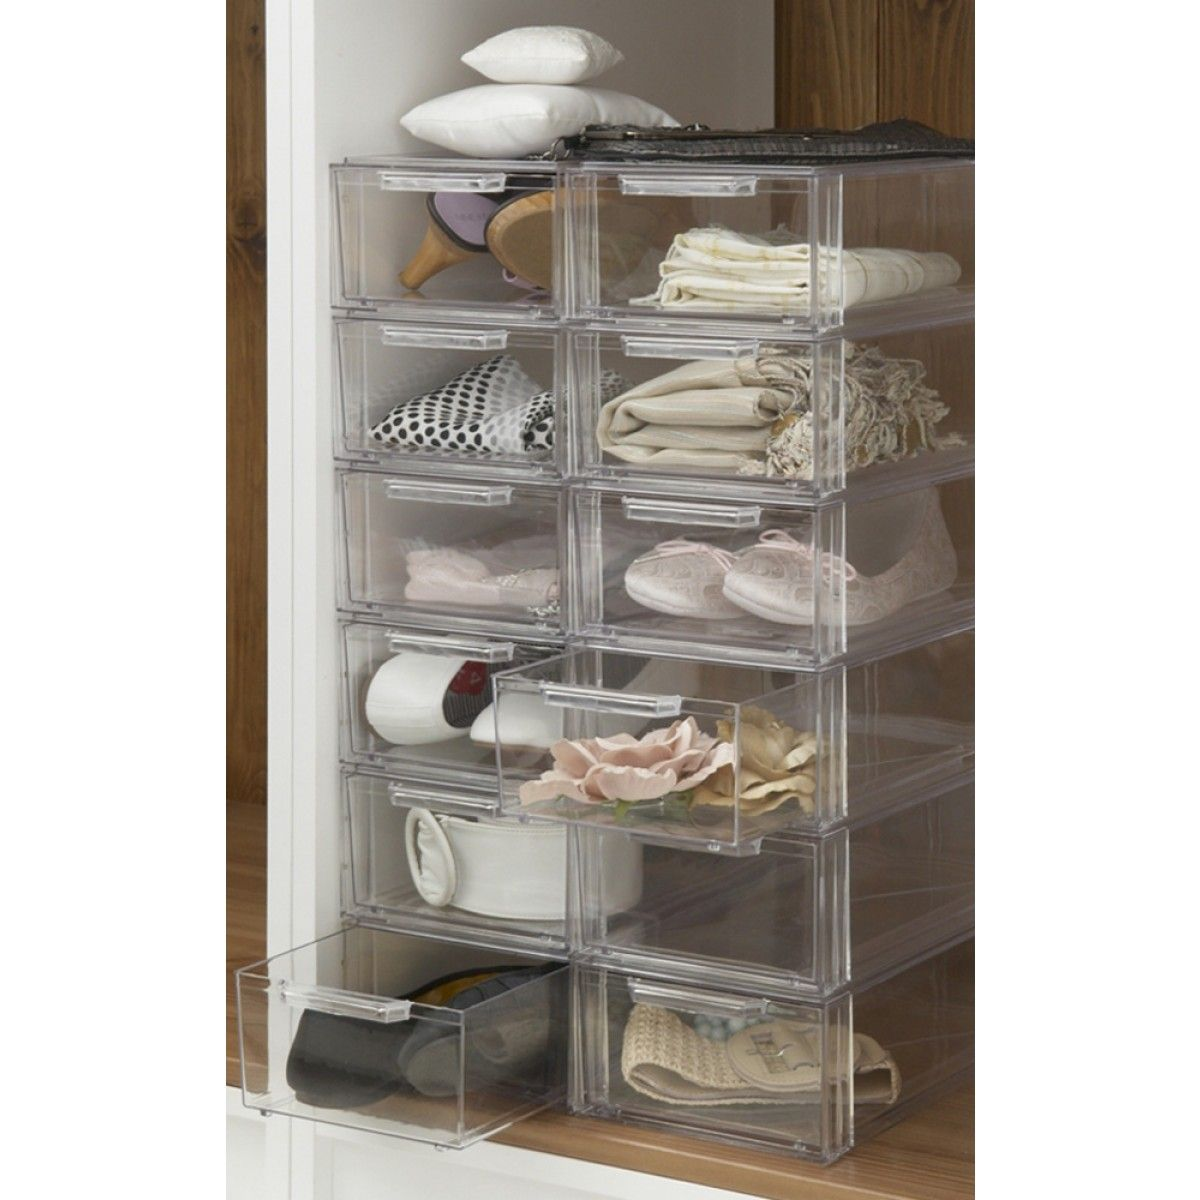 Stackable Shoe Drawer Shoe Drawer Plastic Storage Drawers Shoe